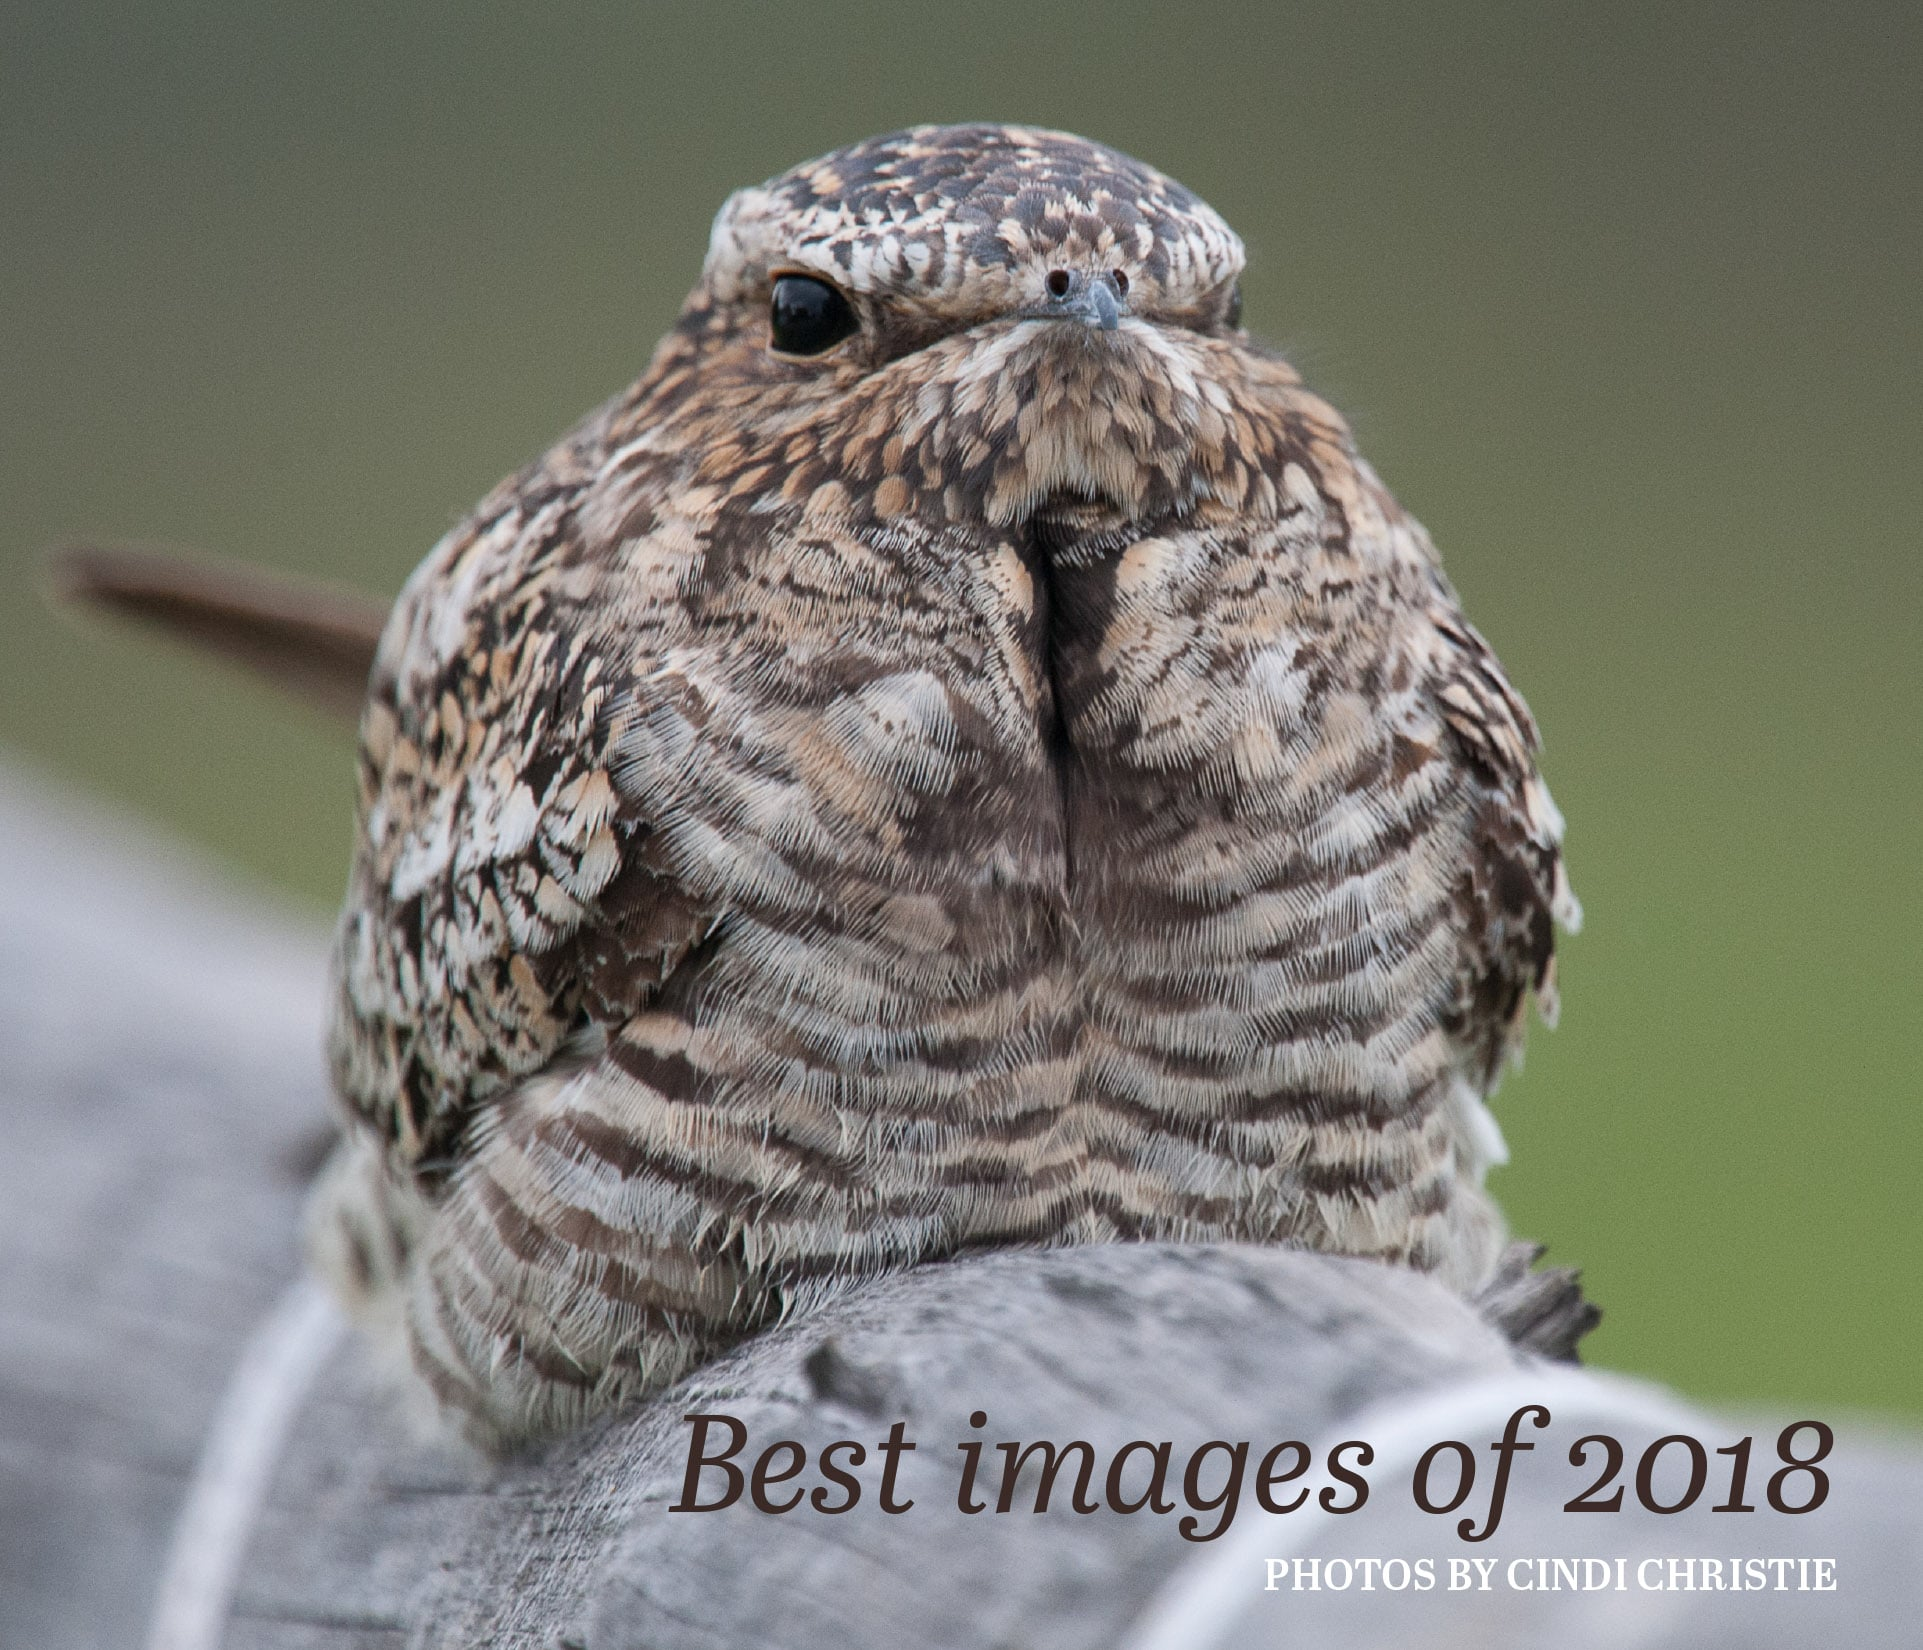 Best images of 2018 cover photo